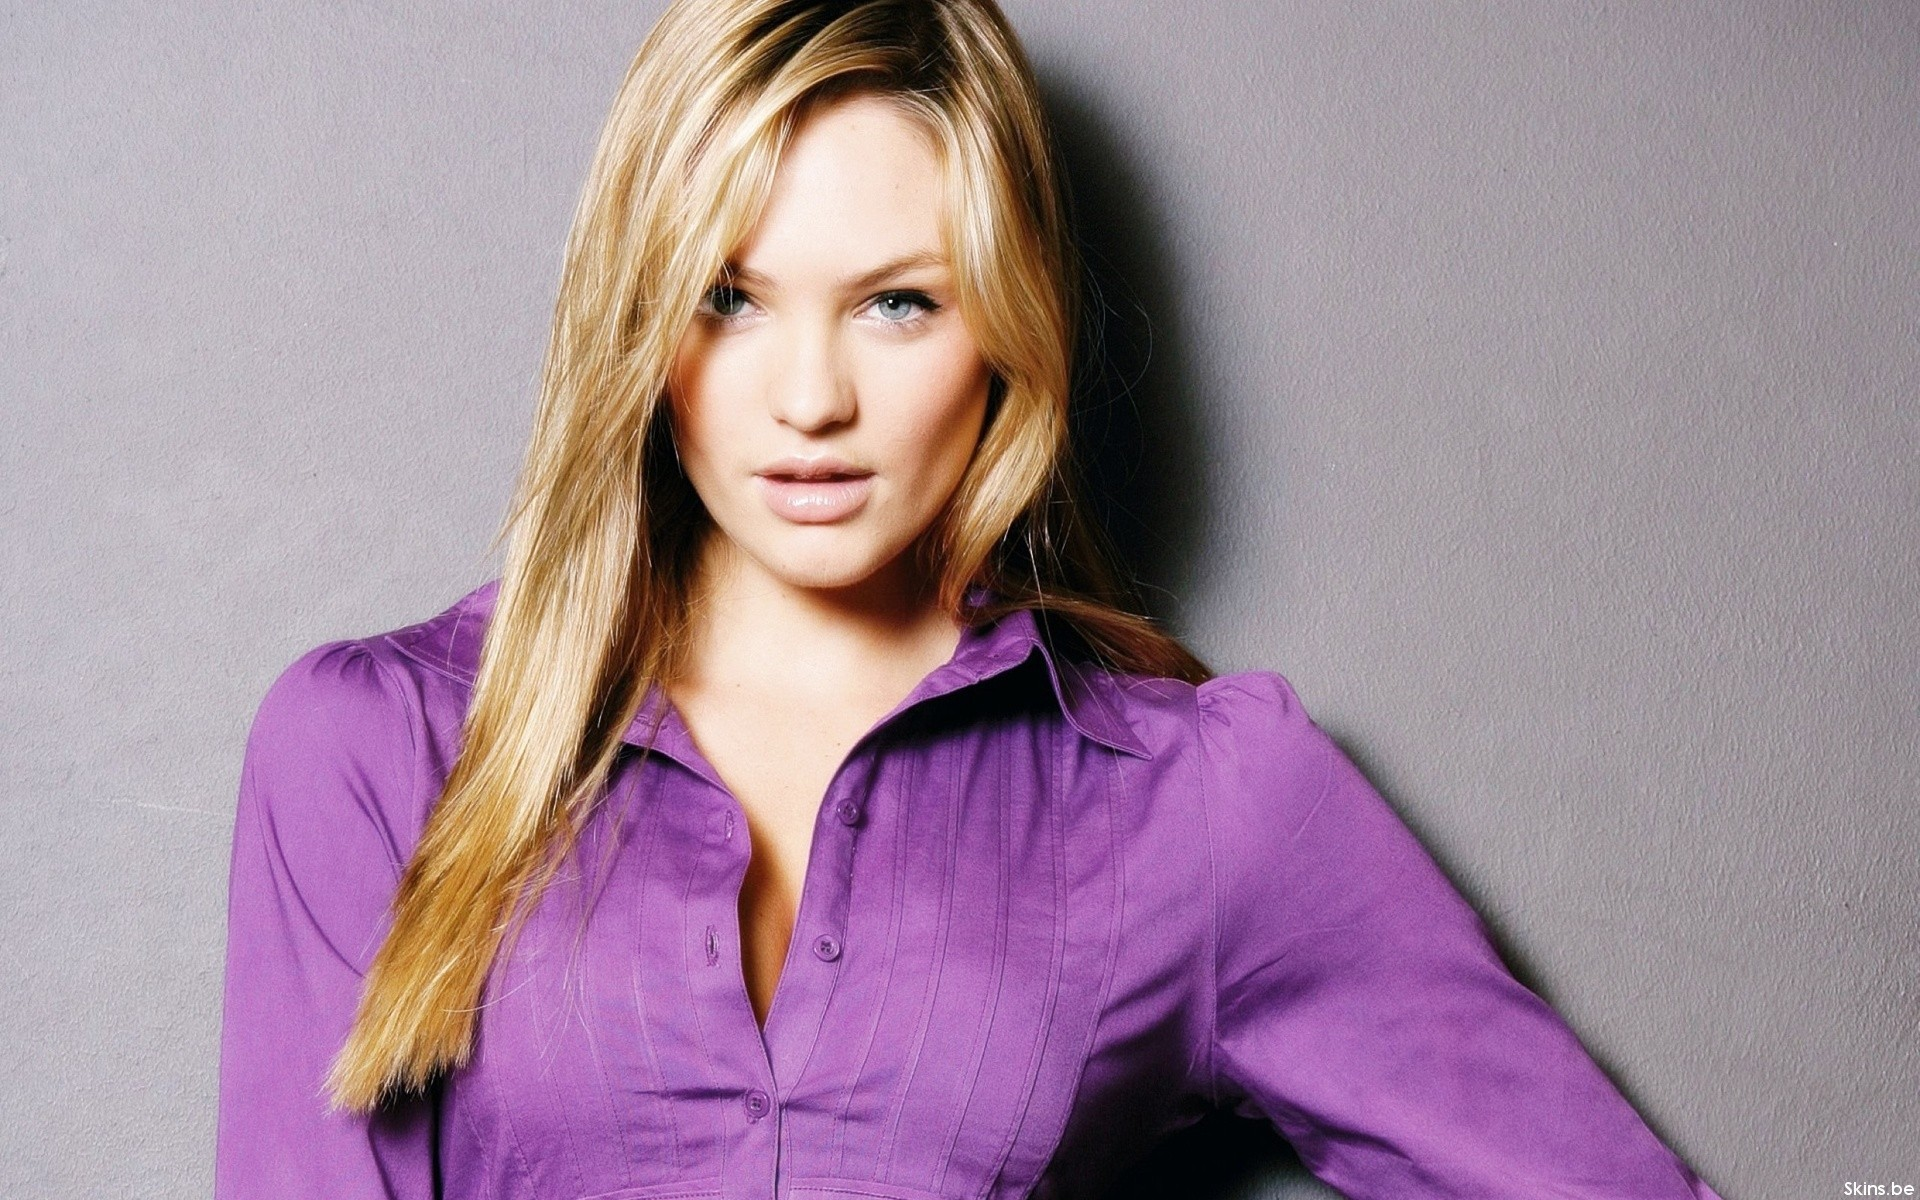 woman candice swanepoel supermodels HD Wallpaper